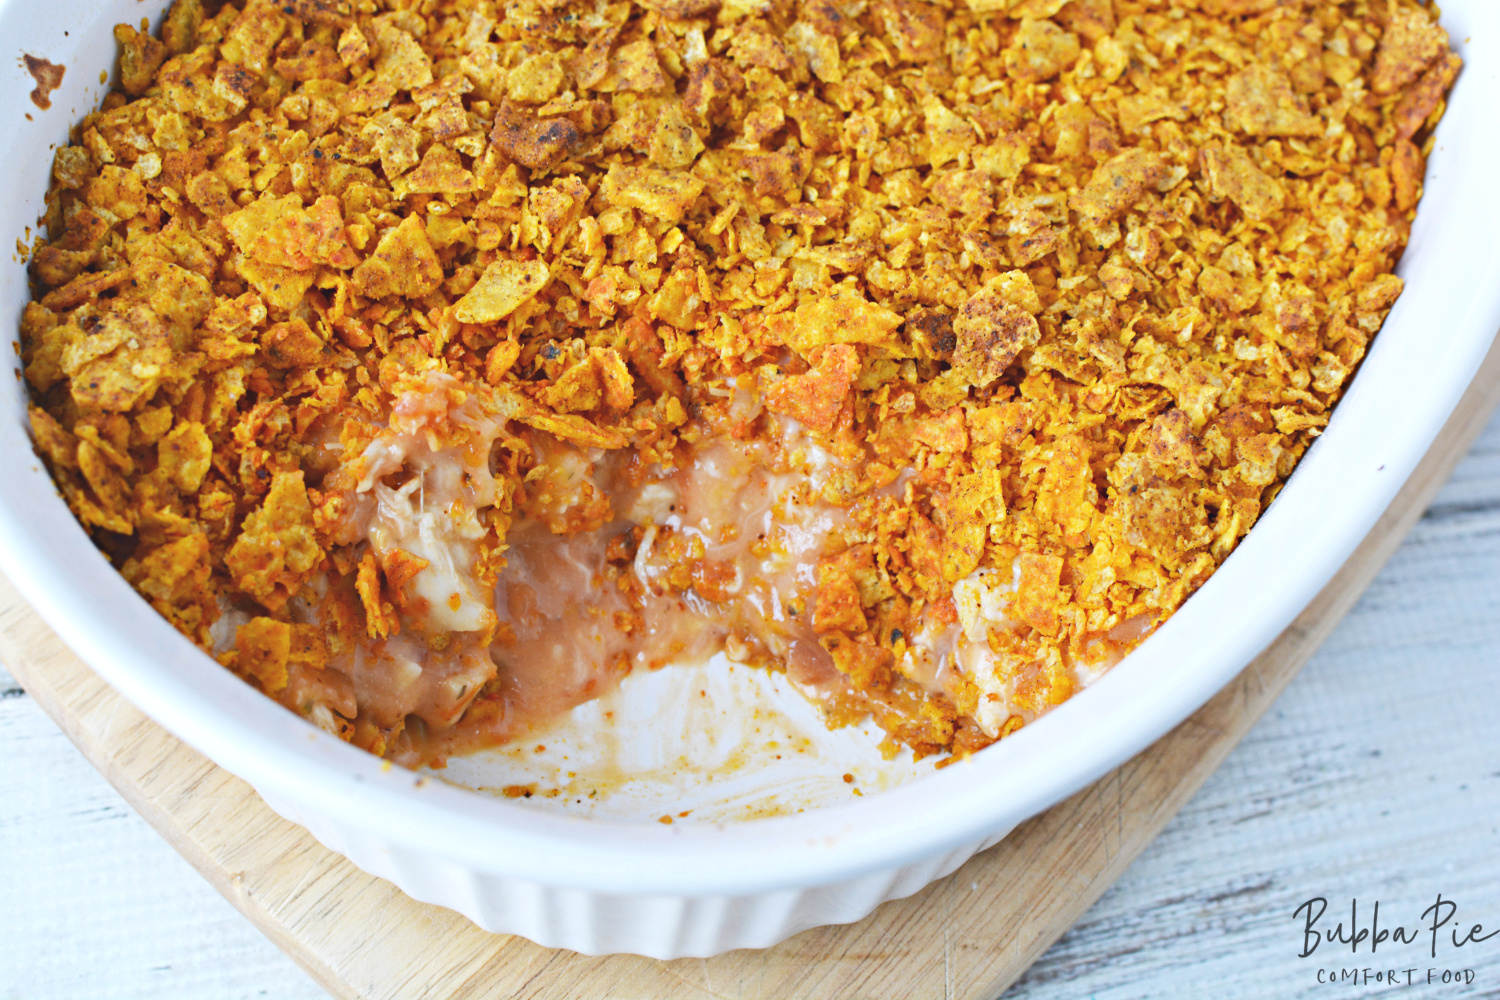 Mexican Chicken Casserole is great when made with Doritos!